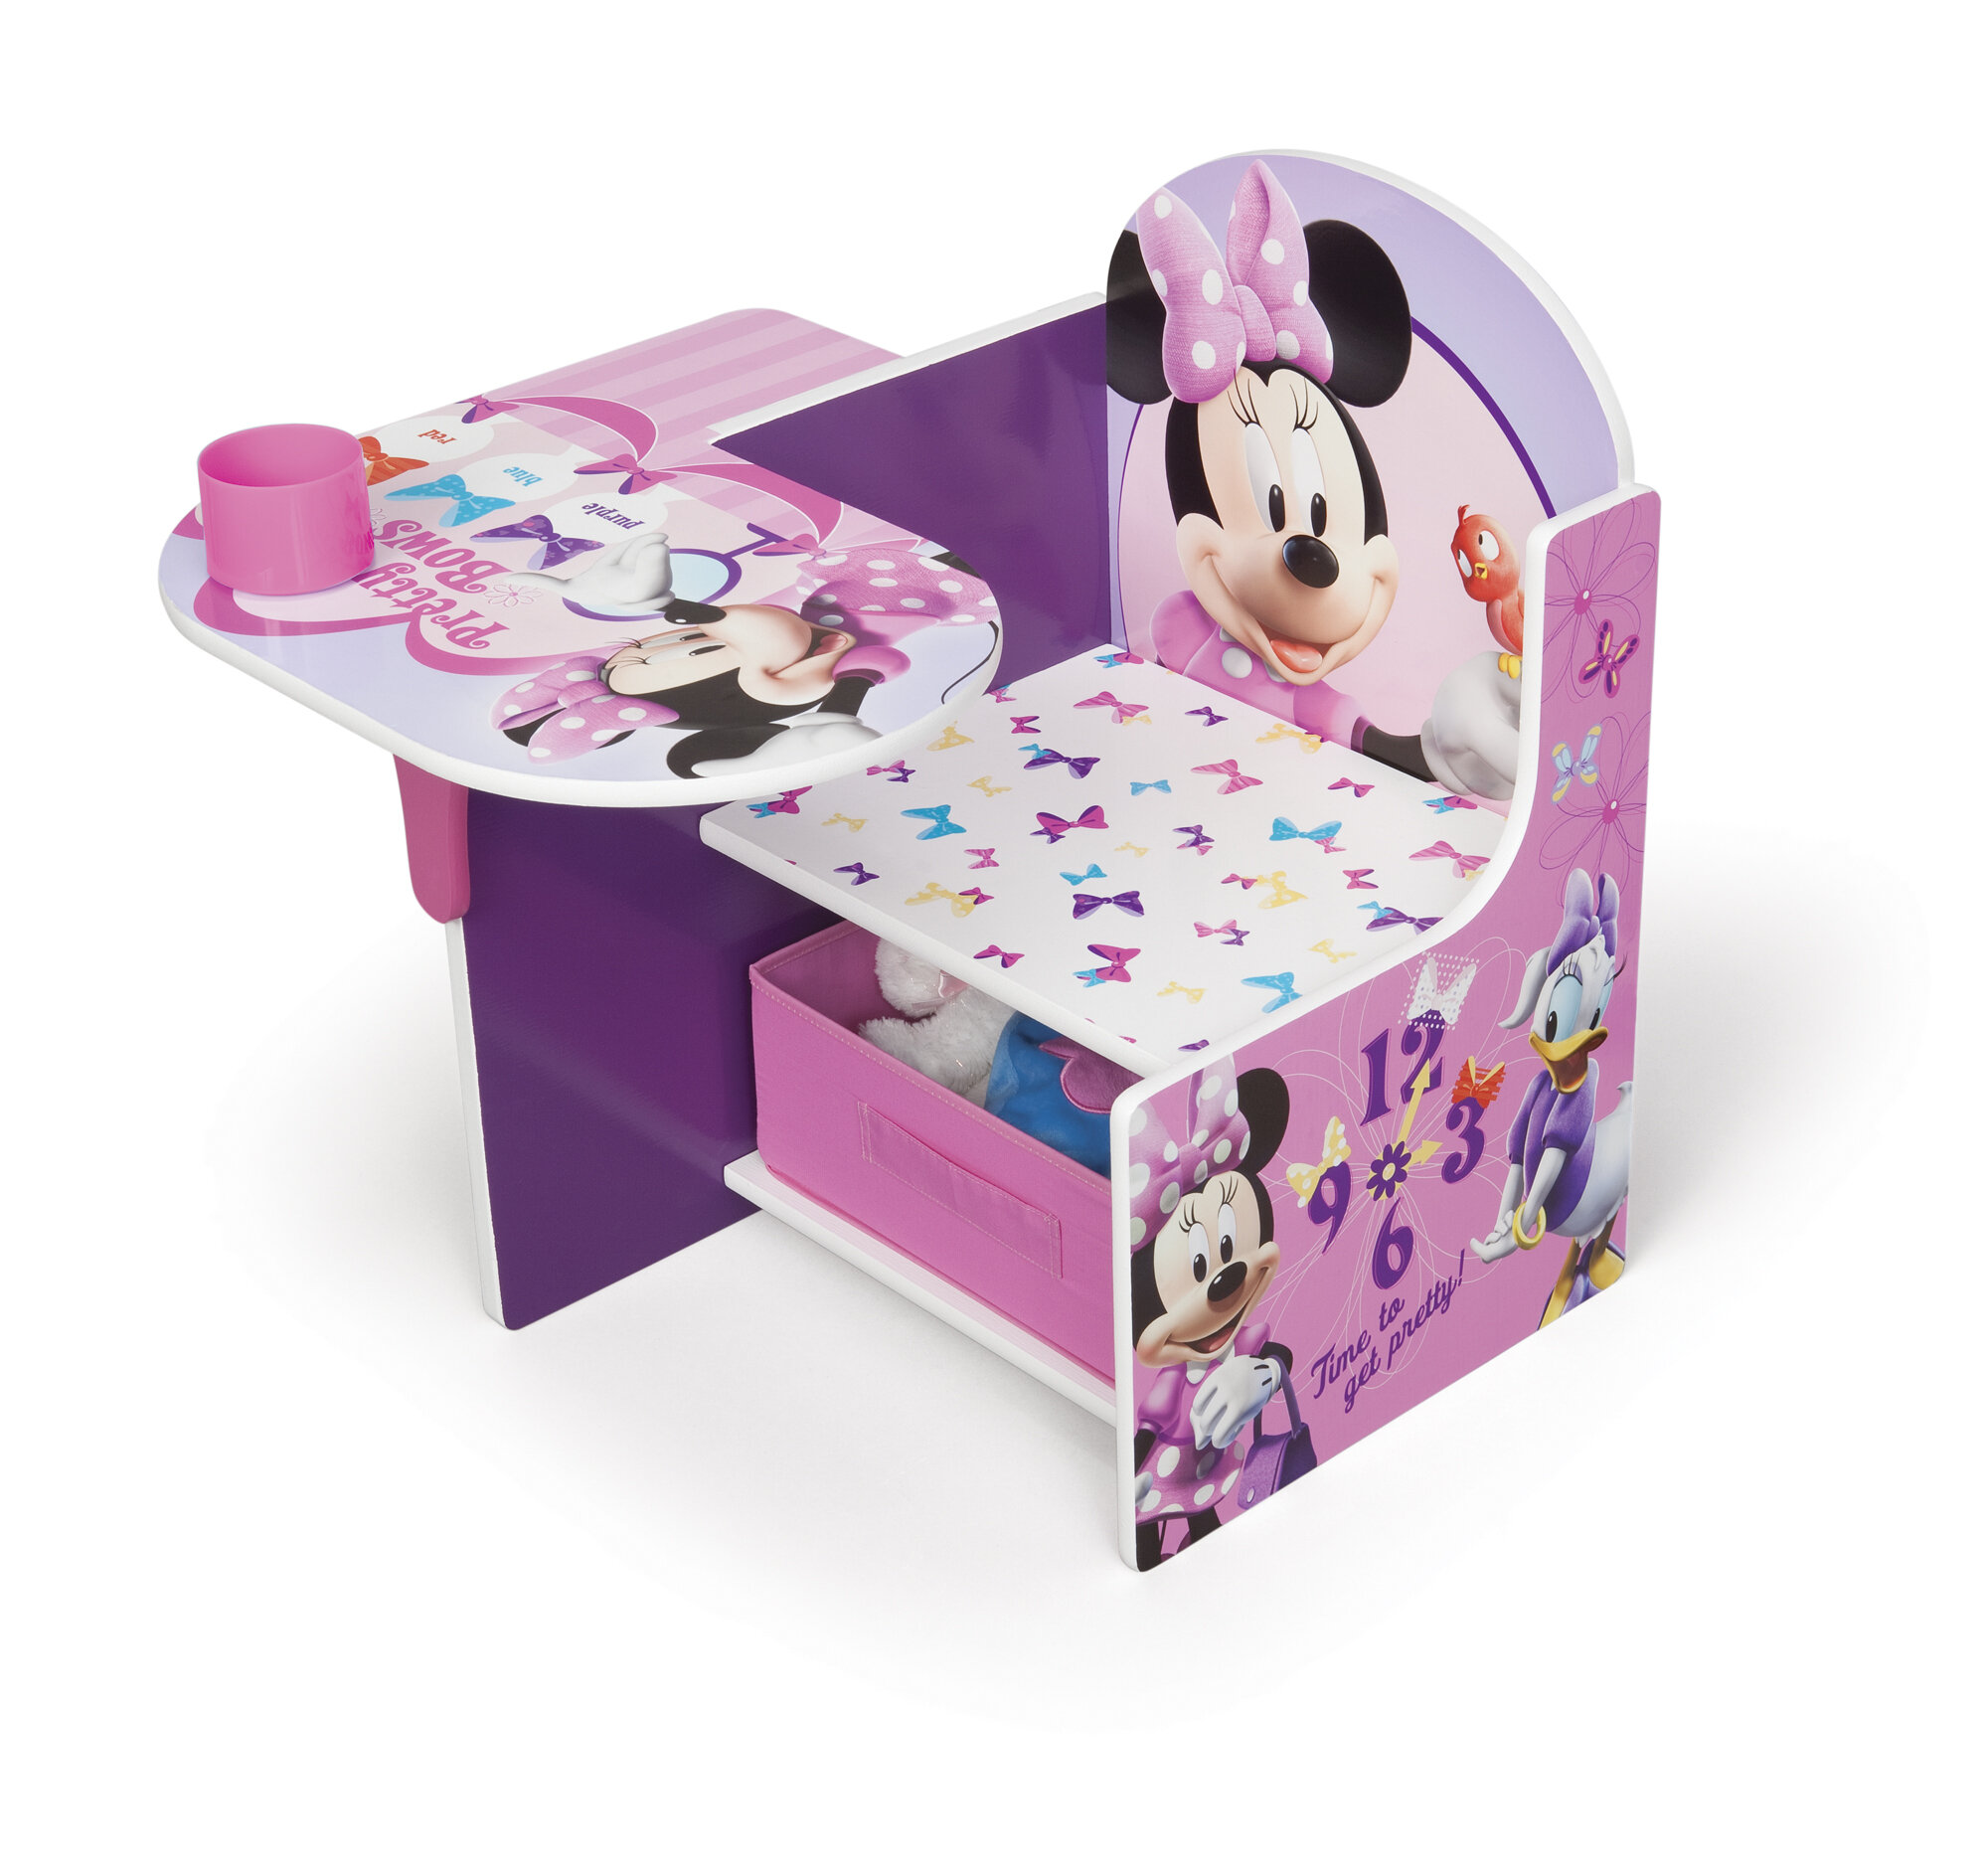 Incredible Minnie Kids Desk Chair With Storage Compartment And Cup Holder Pdpeps Interior Chair Design Pdpepsorg